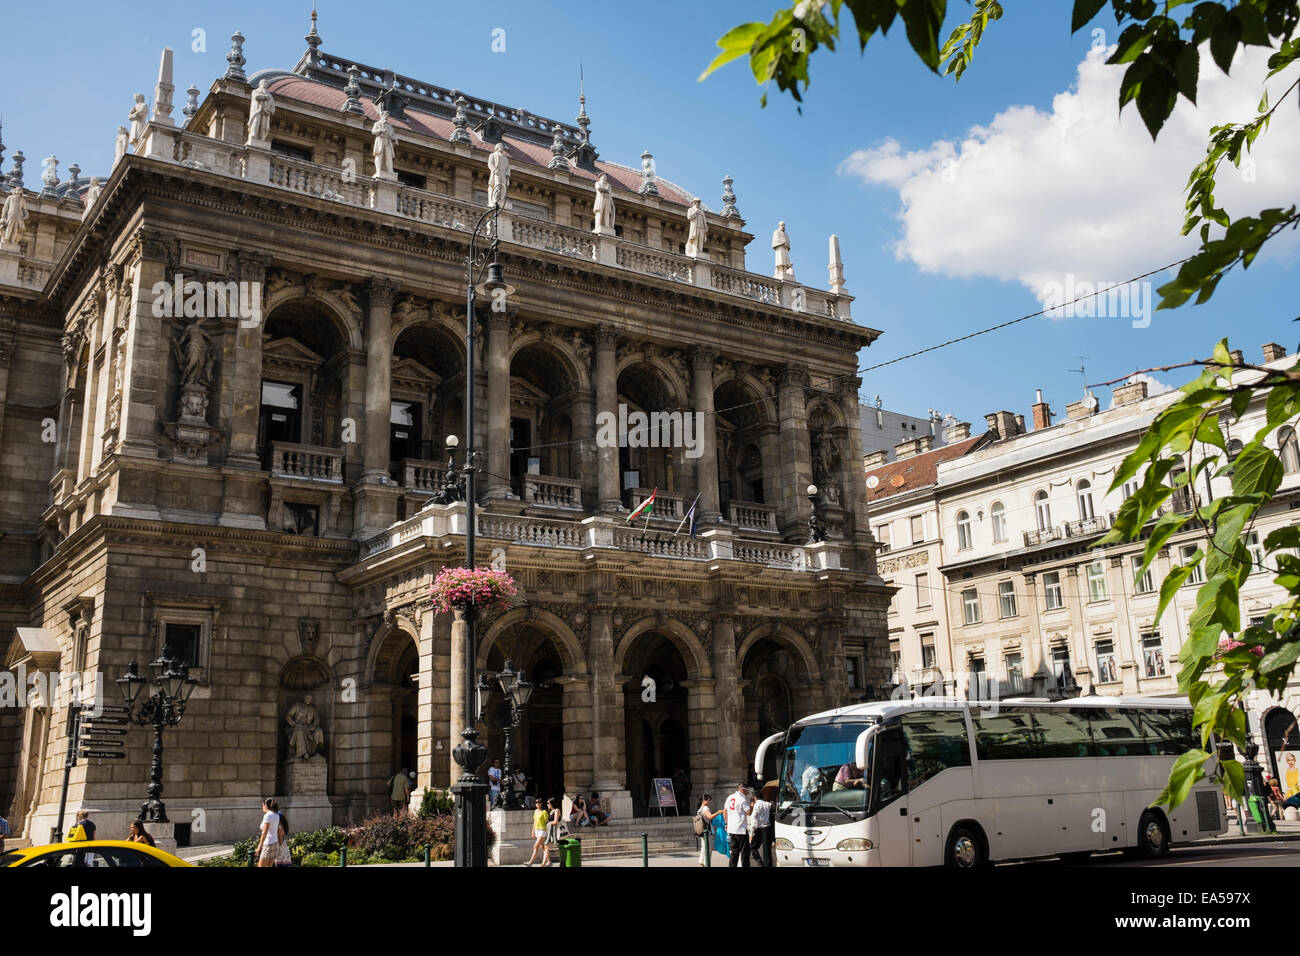 Exterior view of the Hungarian State Opera House in Budapest, Hungary. - Stock Image